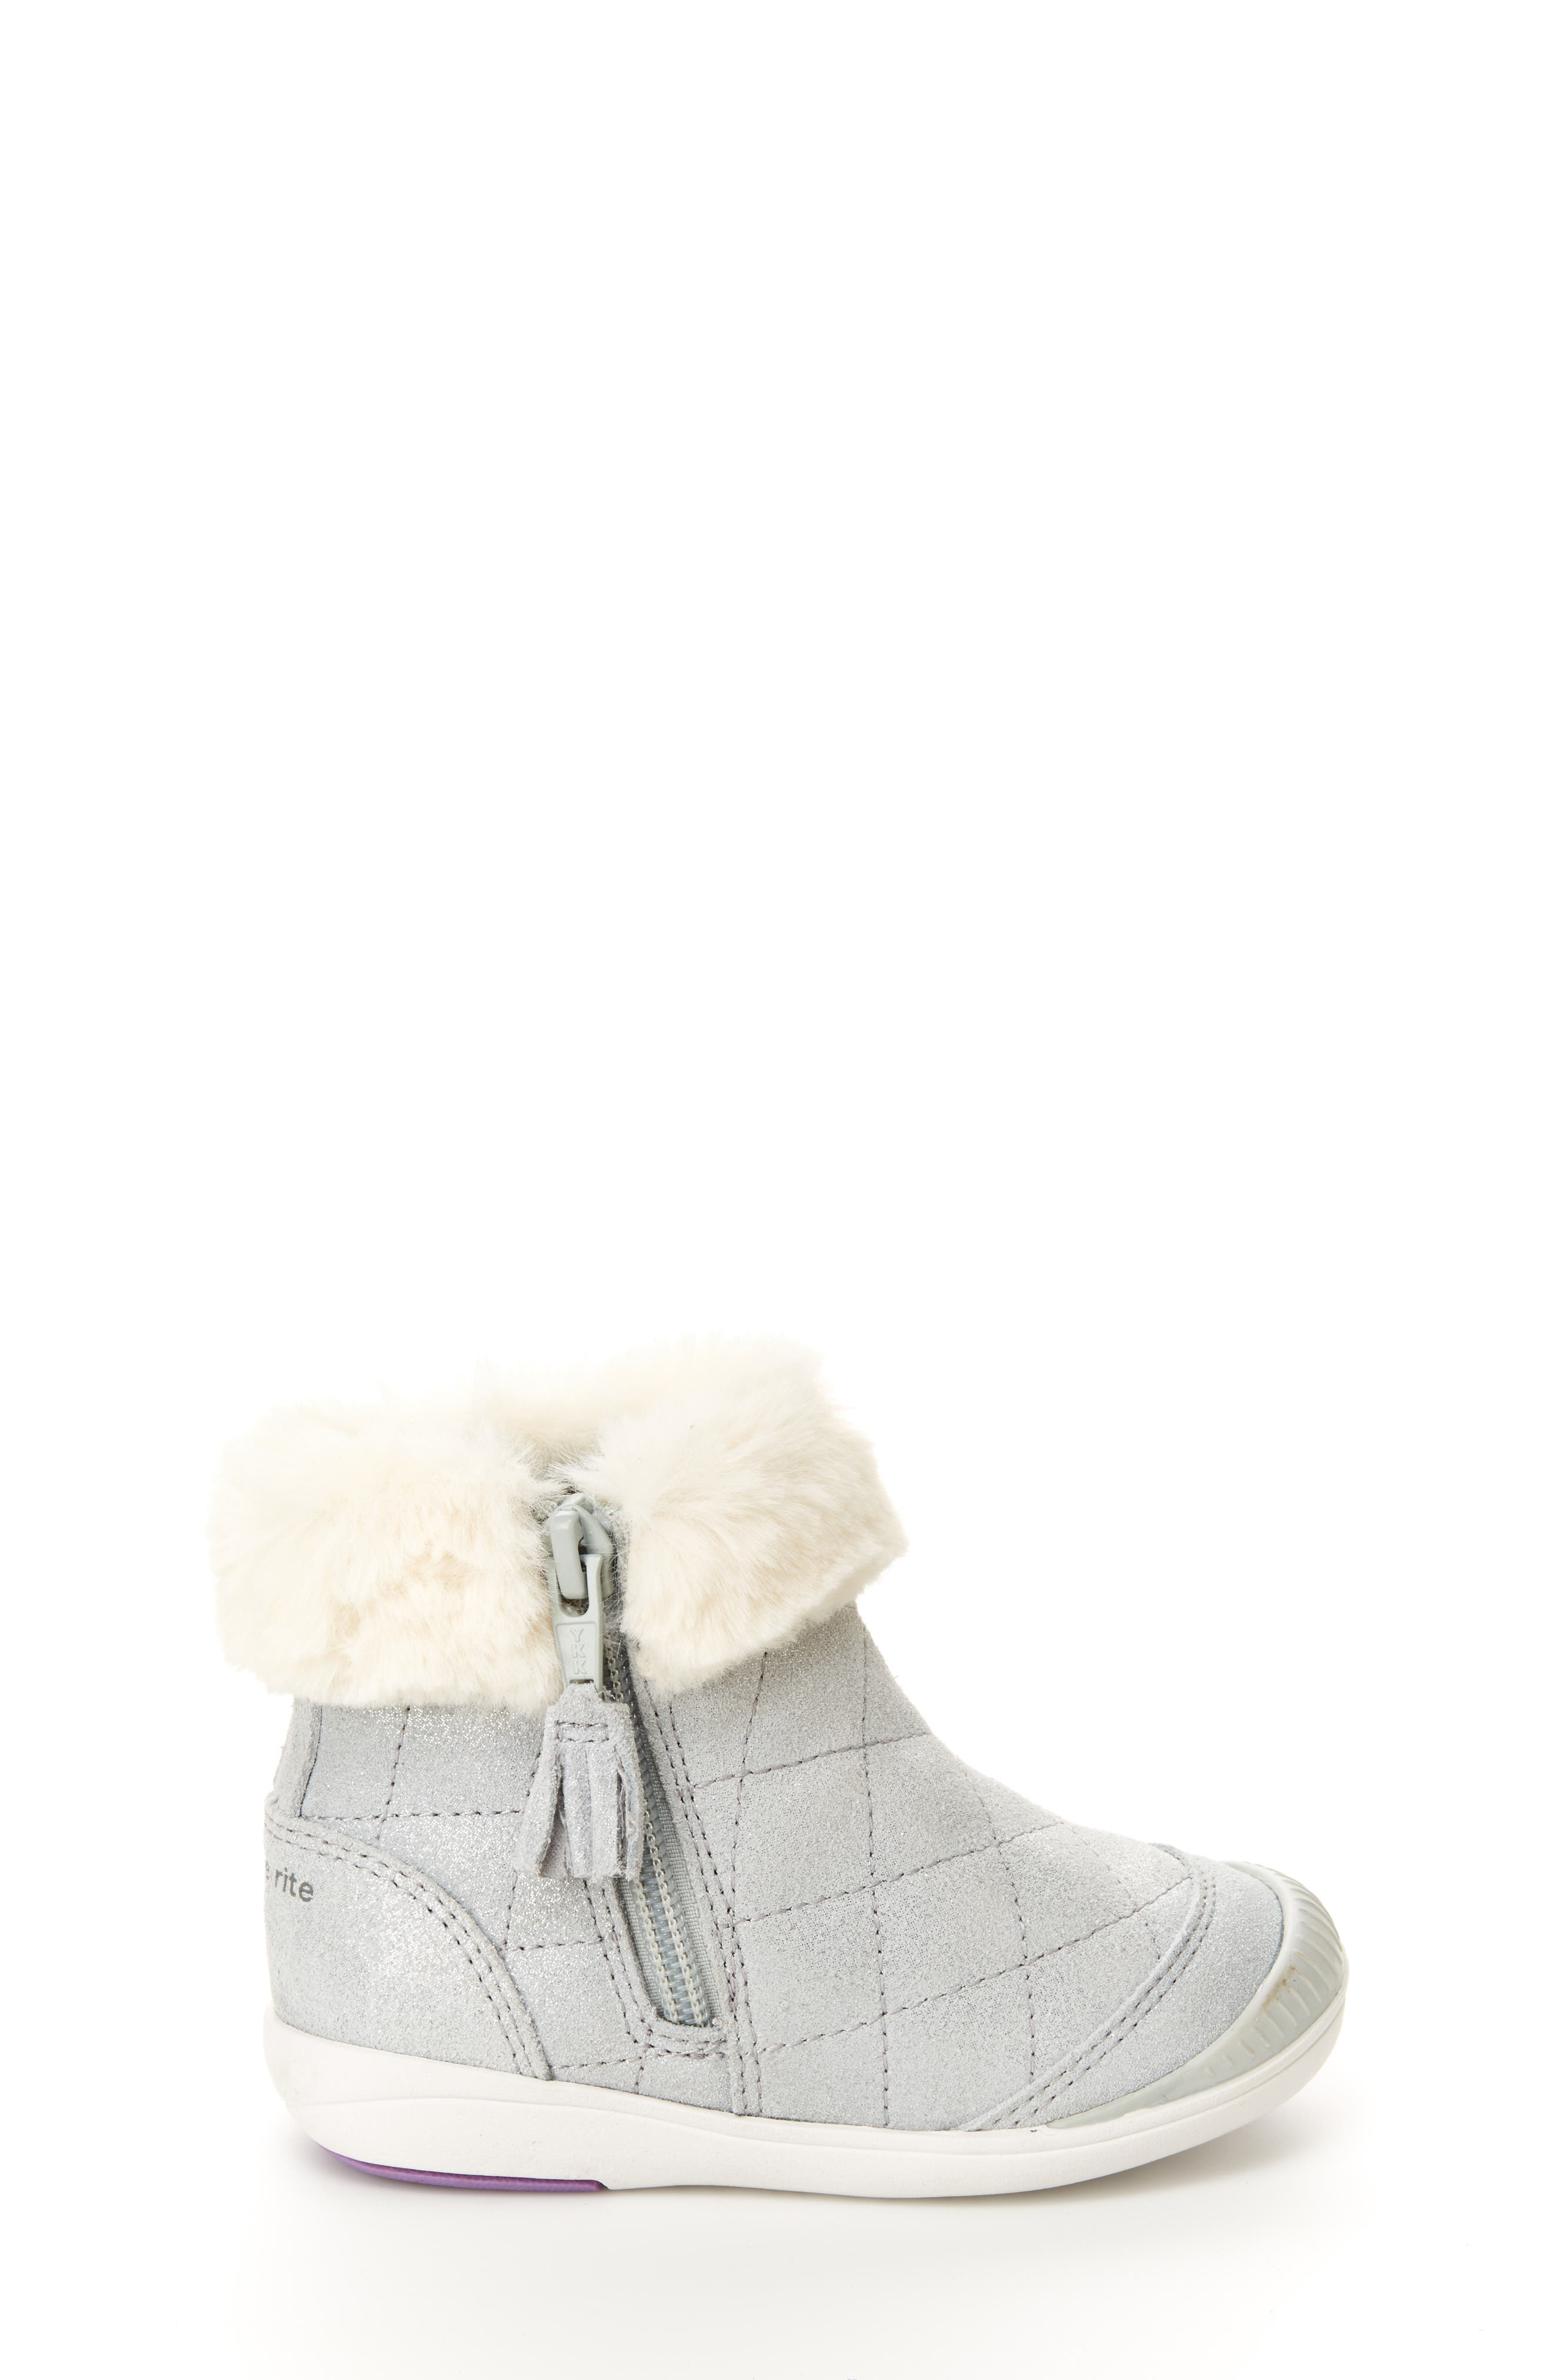 Chloe Faux Fur Quilted Bootie,                             Alternate thumbnail 2, color,                             SILVER